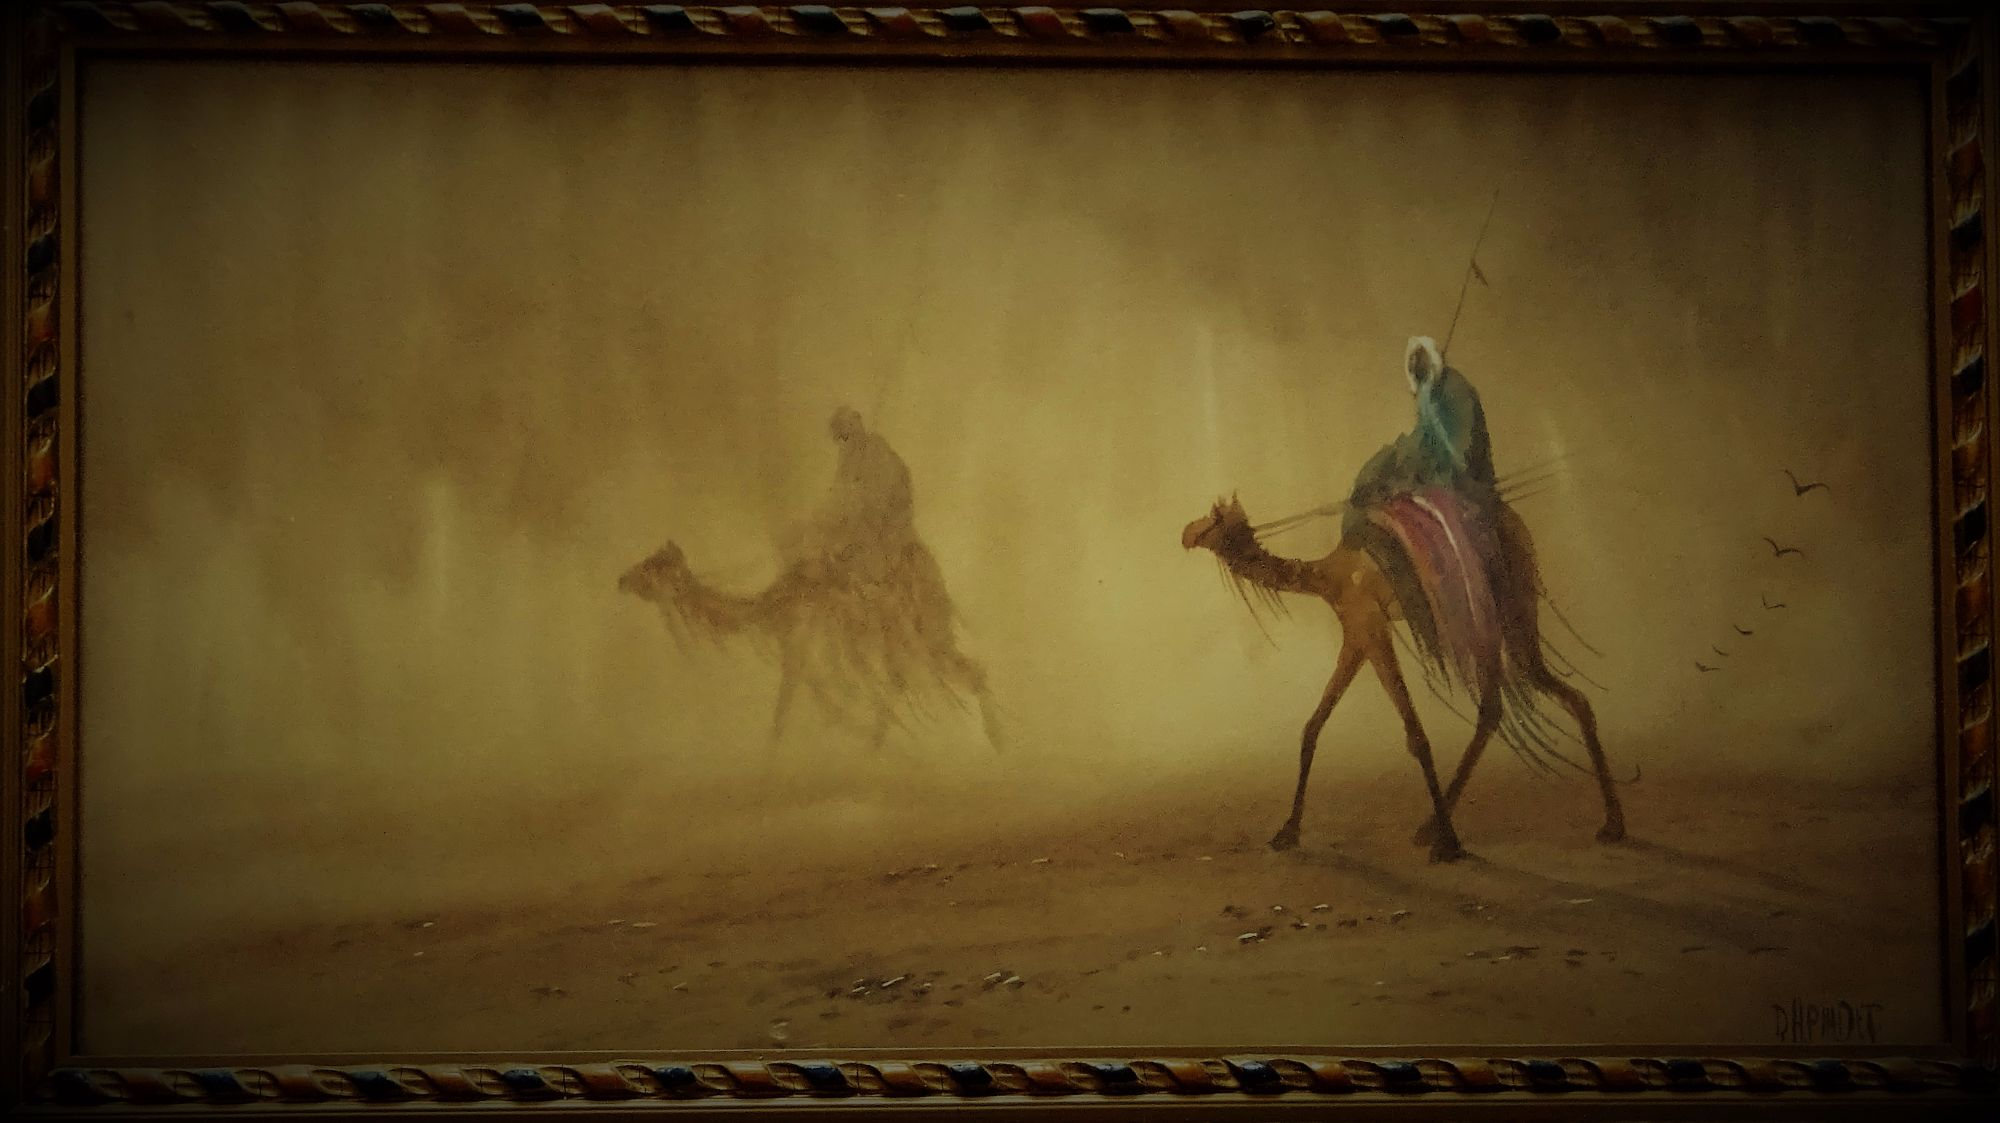 DH Pinder, Riders in Desert Sandstorm, watercolour and gouache, c1920.